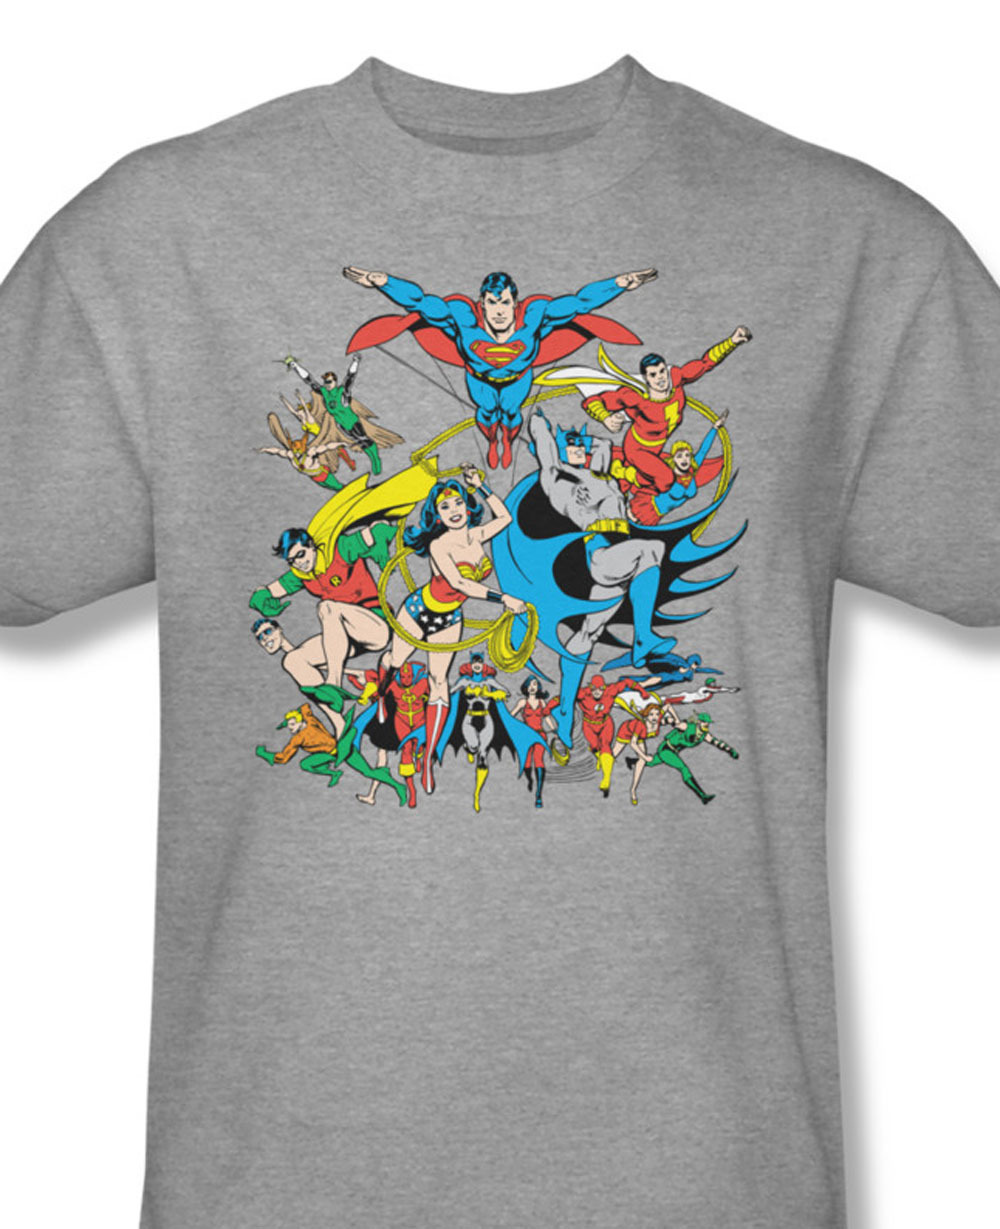 Iends legends tee batman superman green lantern wonder woman for sale online gray graphic tshirt